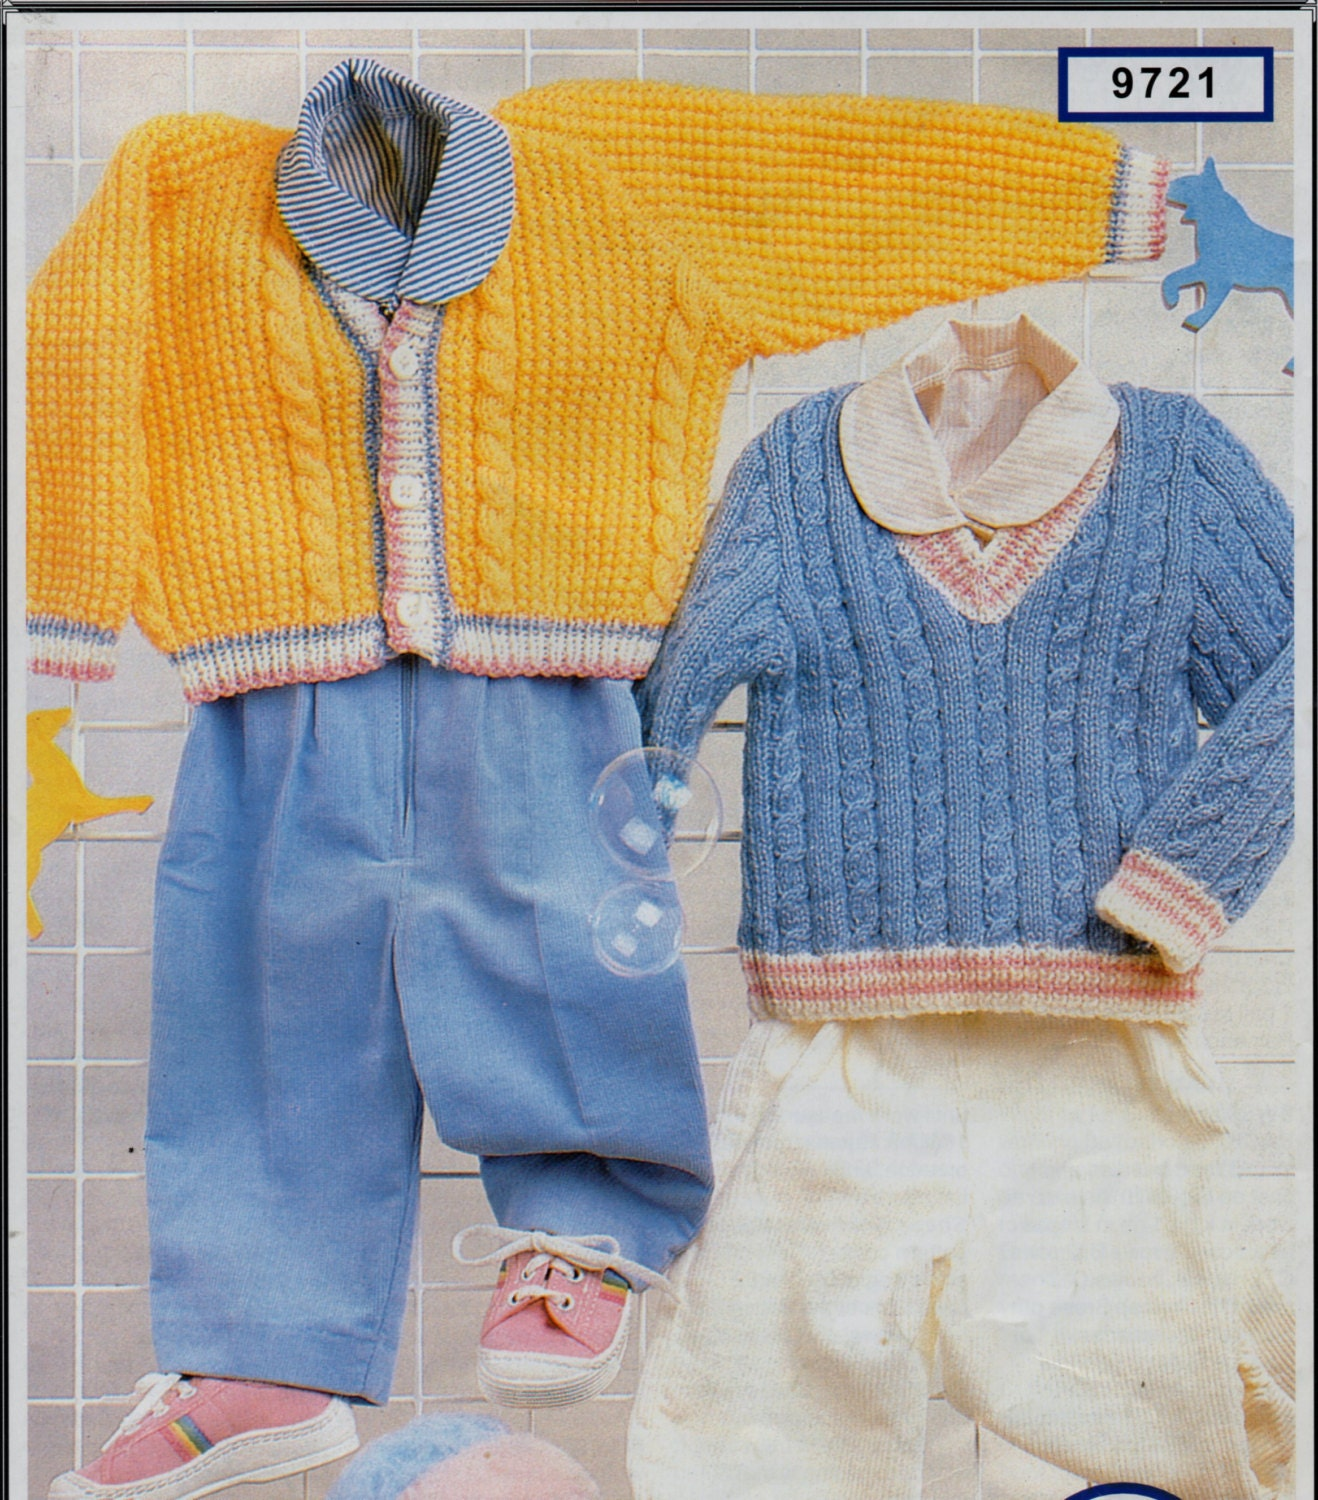 Knitting Pattern For Cricket Sweater : baby cable cardigan sweater knitting pattern pdf DK cricket